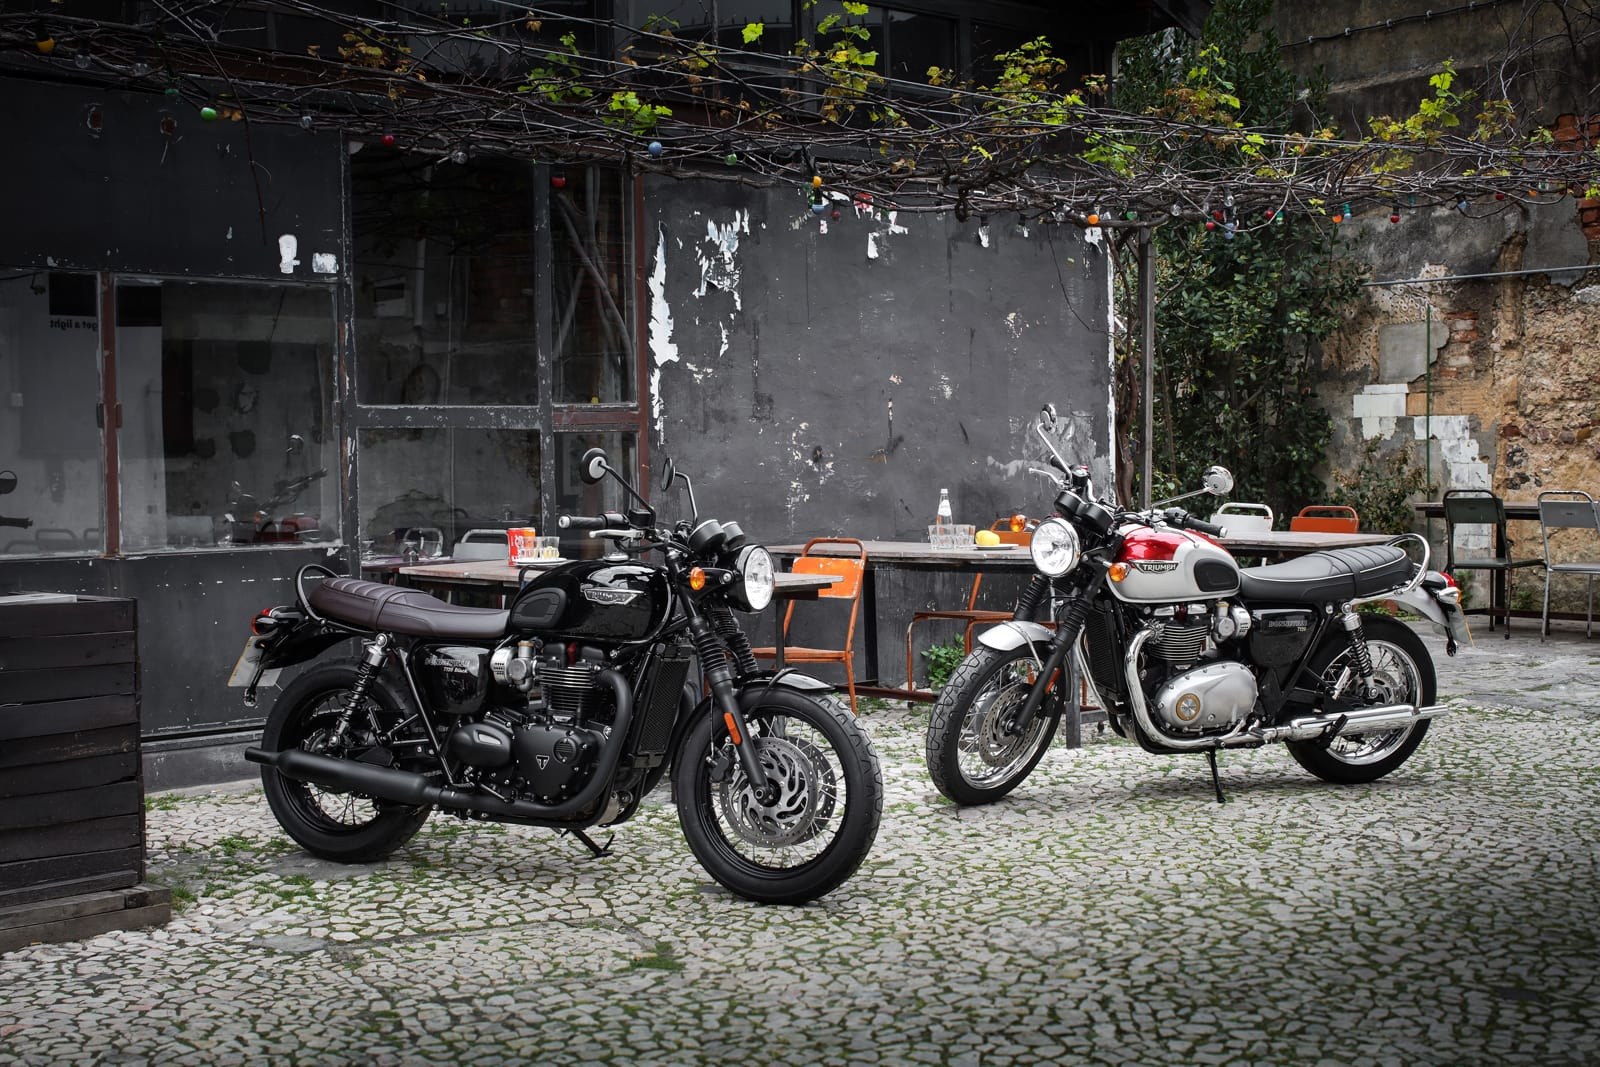 motorrad triumph bonneville t 120 ab 12 500 franken. Black Bedroom Furniture Sets. Home Design Ideas